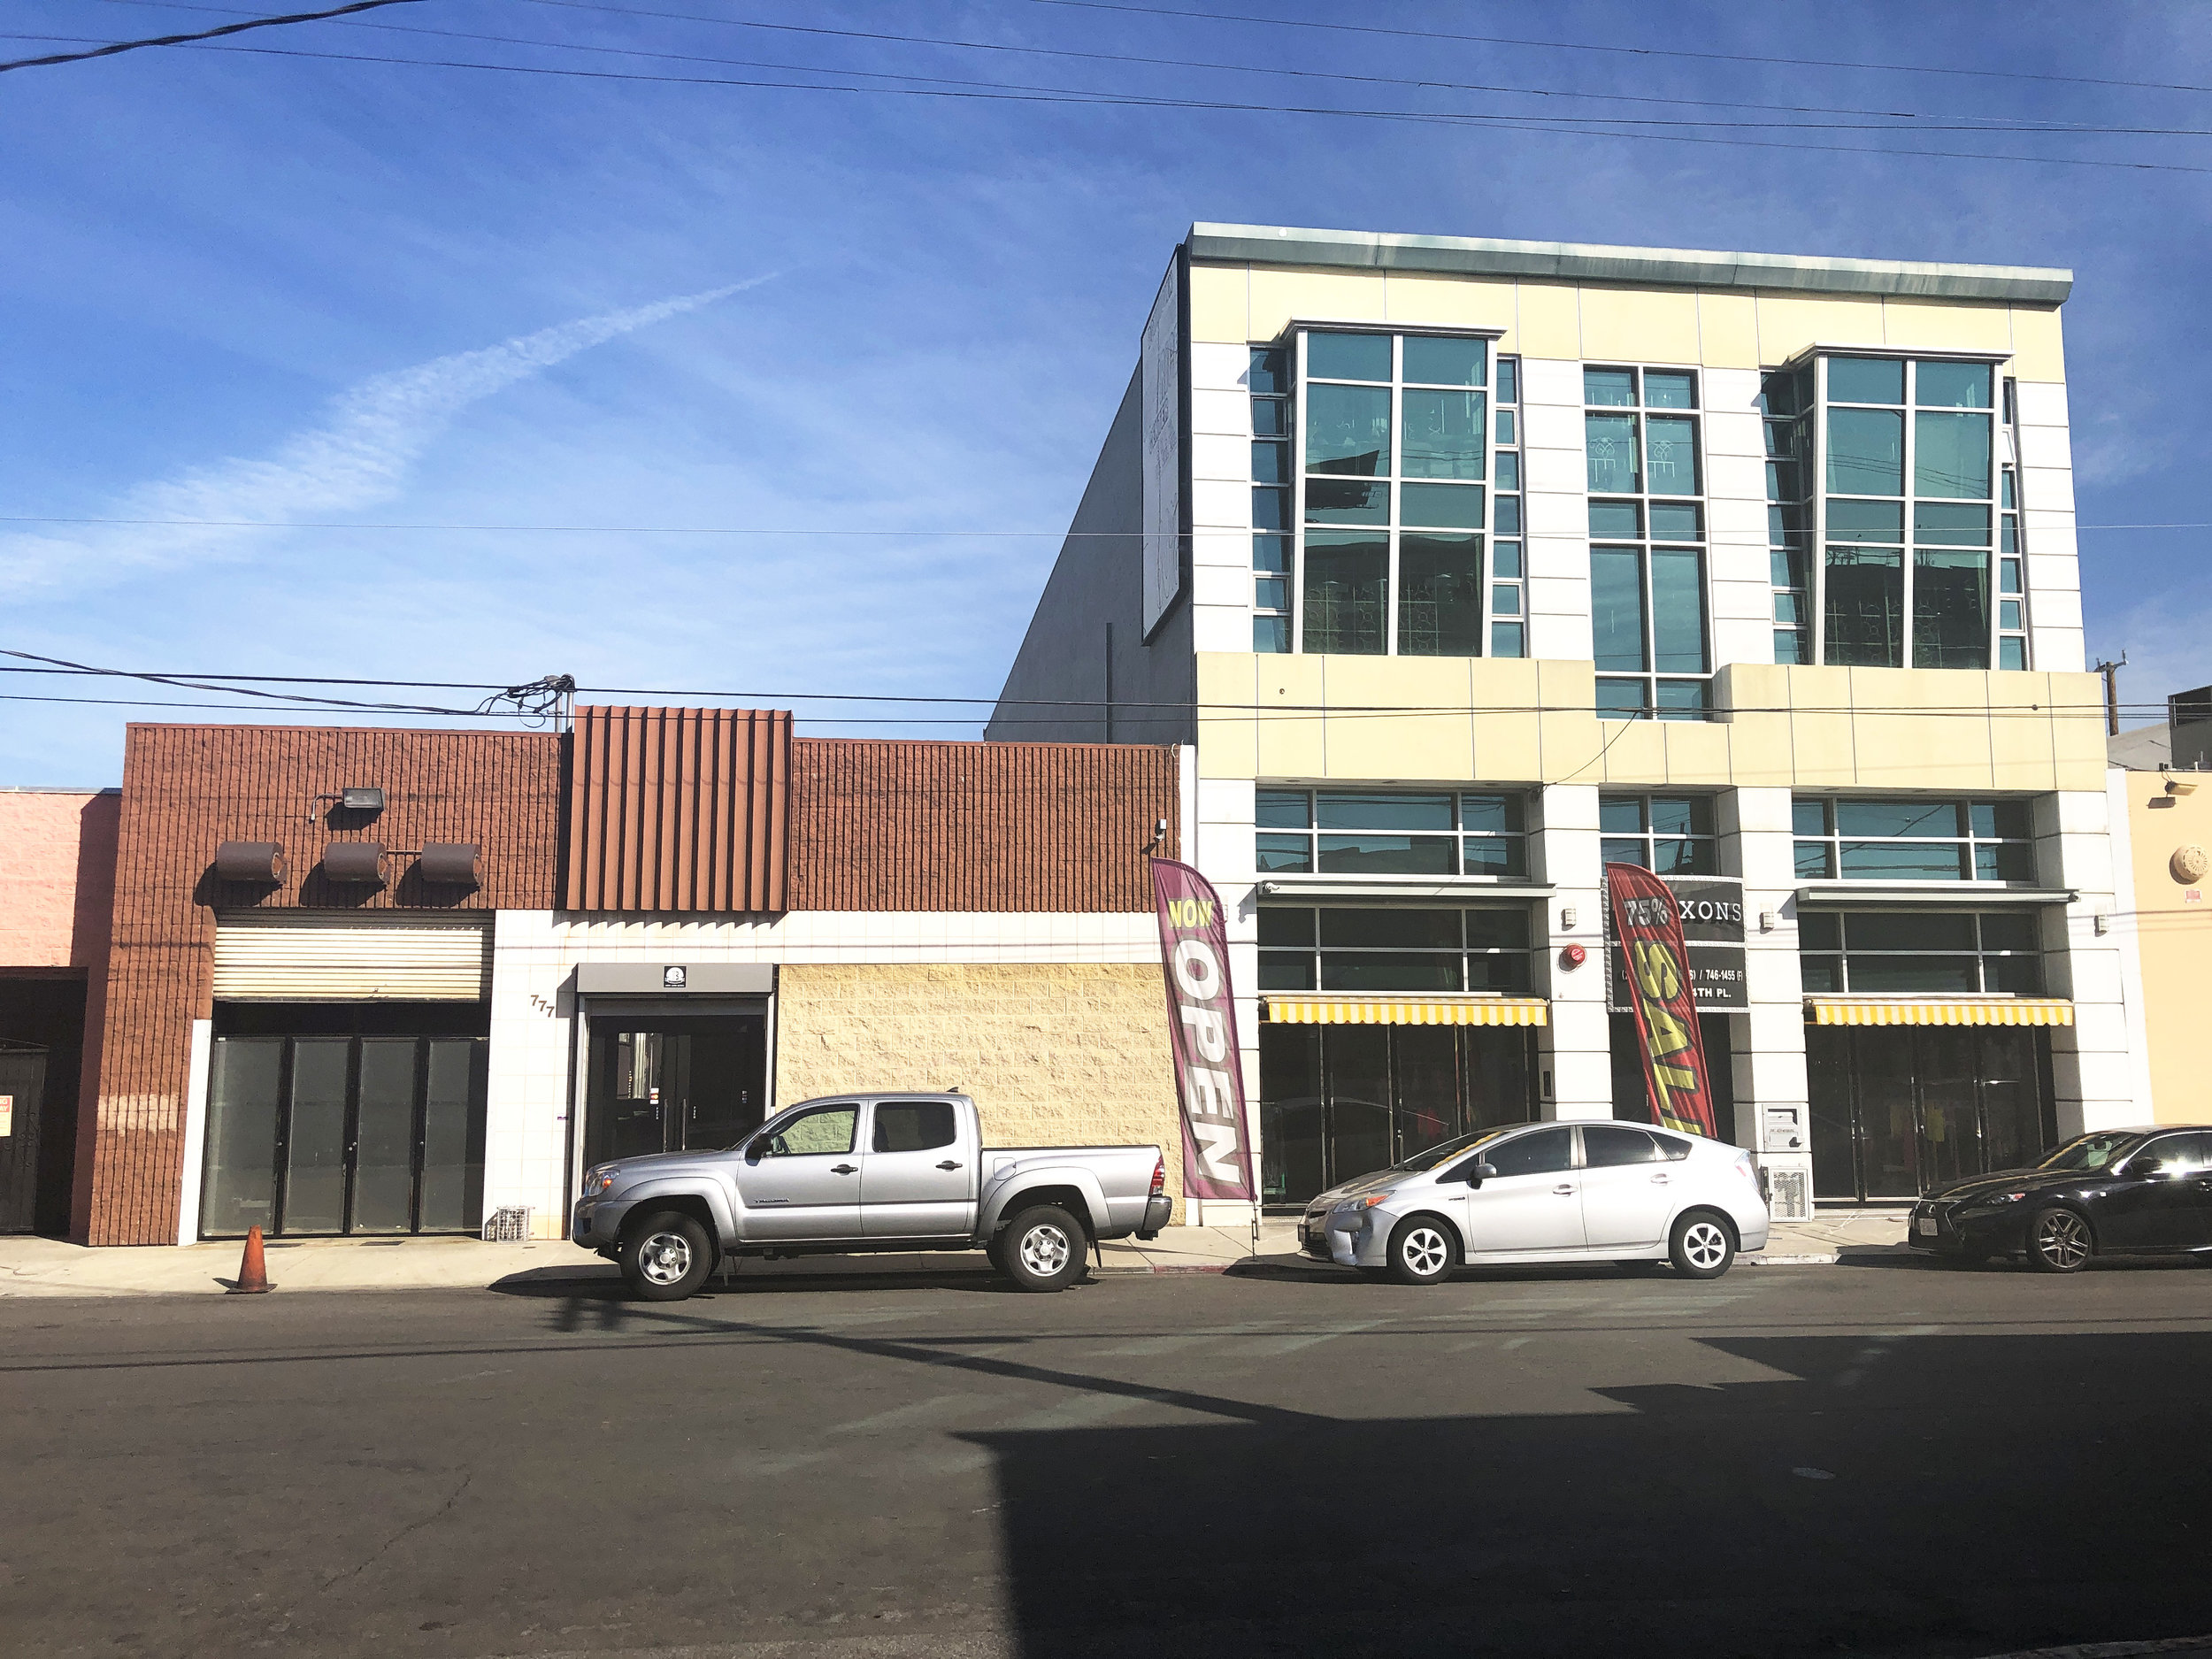 777-781 EAST 14TH PLACE, LOS ANGELES, CA 90021 - - Asking Price: $5,000,000- Property Type: Industrial- Building Size: +/- 13,816 SF- Lot Size: +/- 12,648 SF